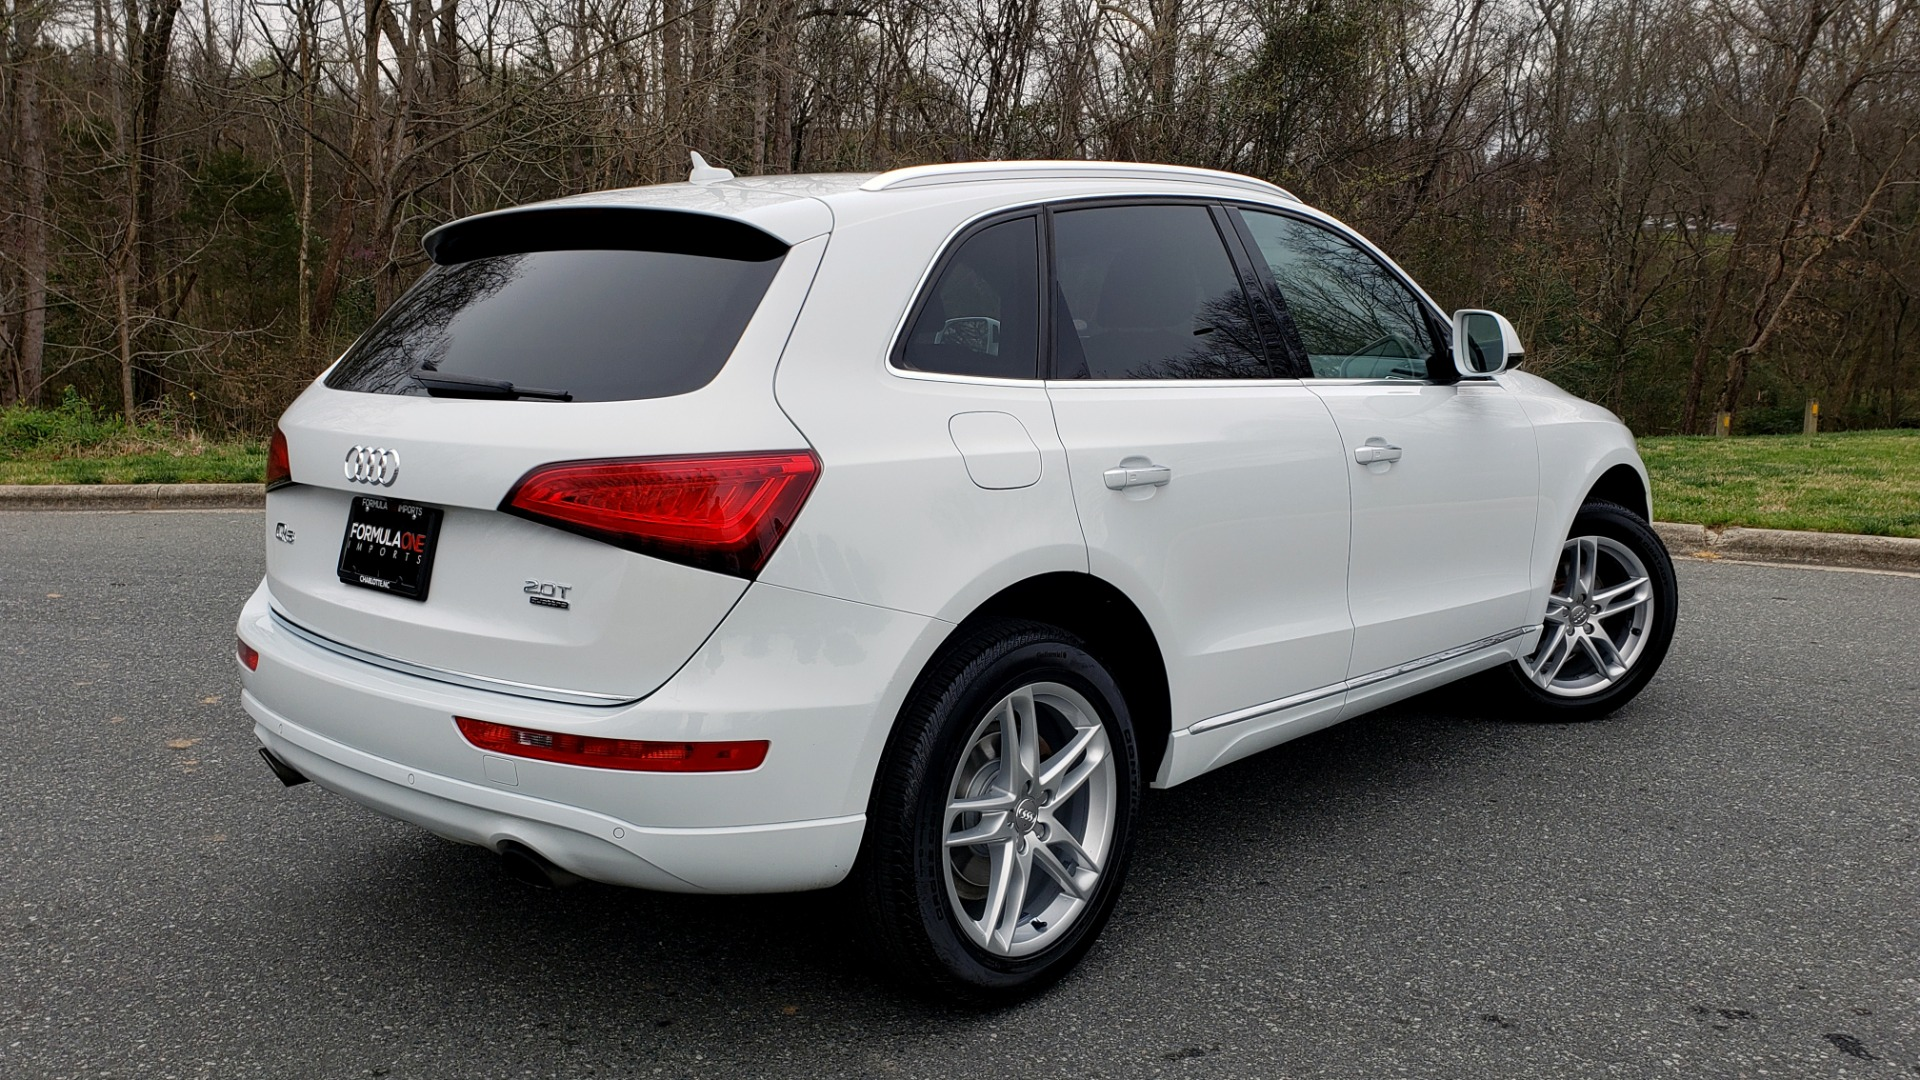 Used 2017 Audi Q5 PREMIUM PLUS / TECH / NAV / PANO-ROOF / B&O SND / REARVIEW for sale Sold at Formula Imports in Charlotte NC 28227 6